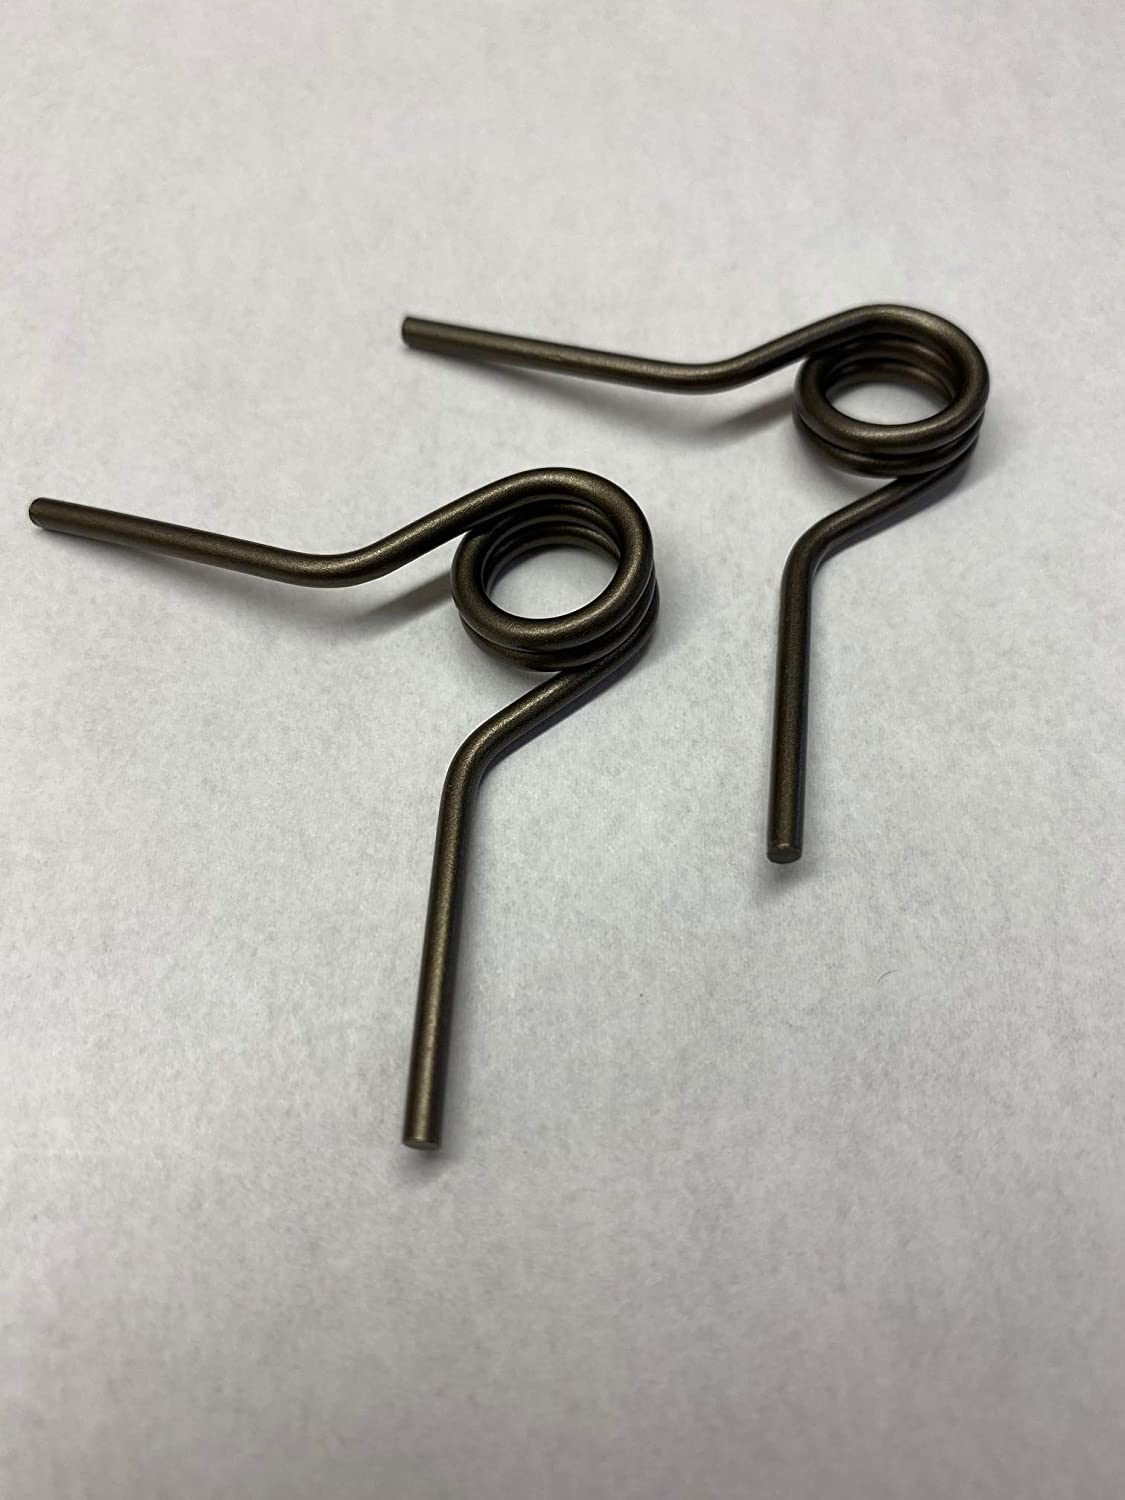 Klenk Replacement Springs MA76000 for Spring new work Left Cutting and Max 90% OFF Straight